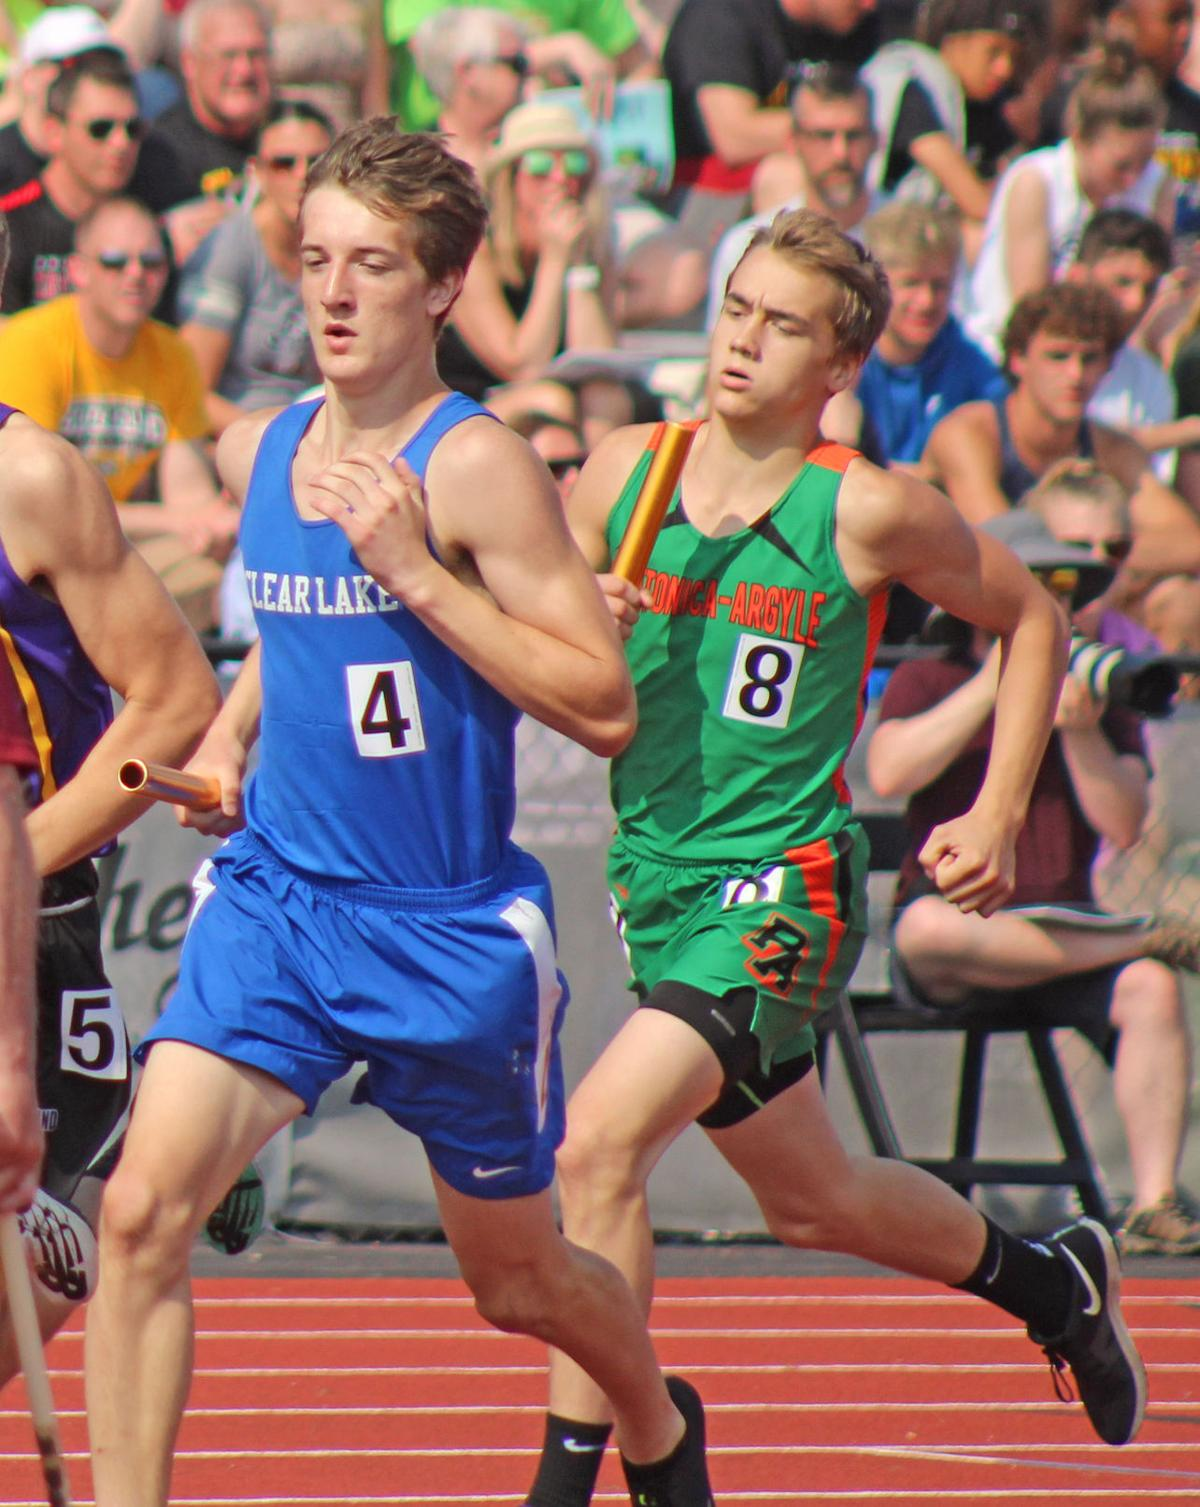 CL boys 1 - Colton Stahl.JPG